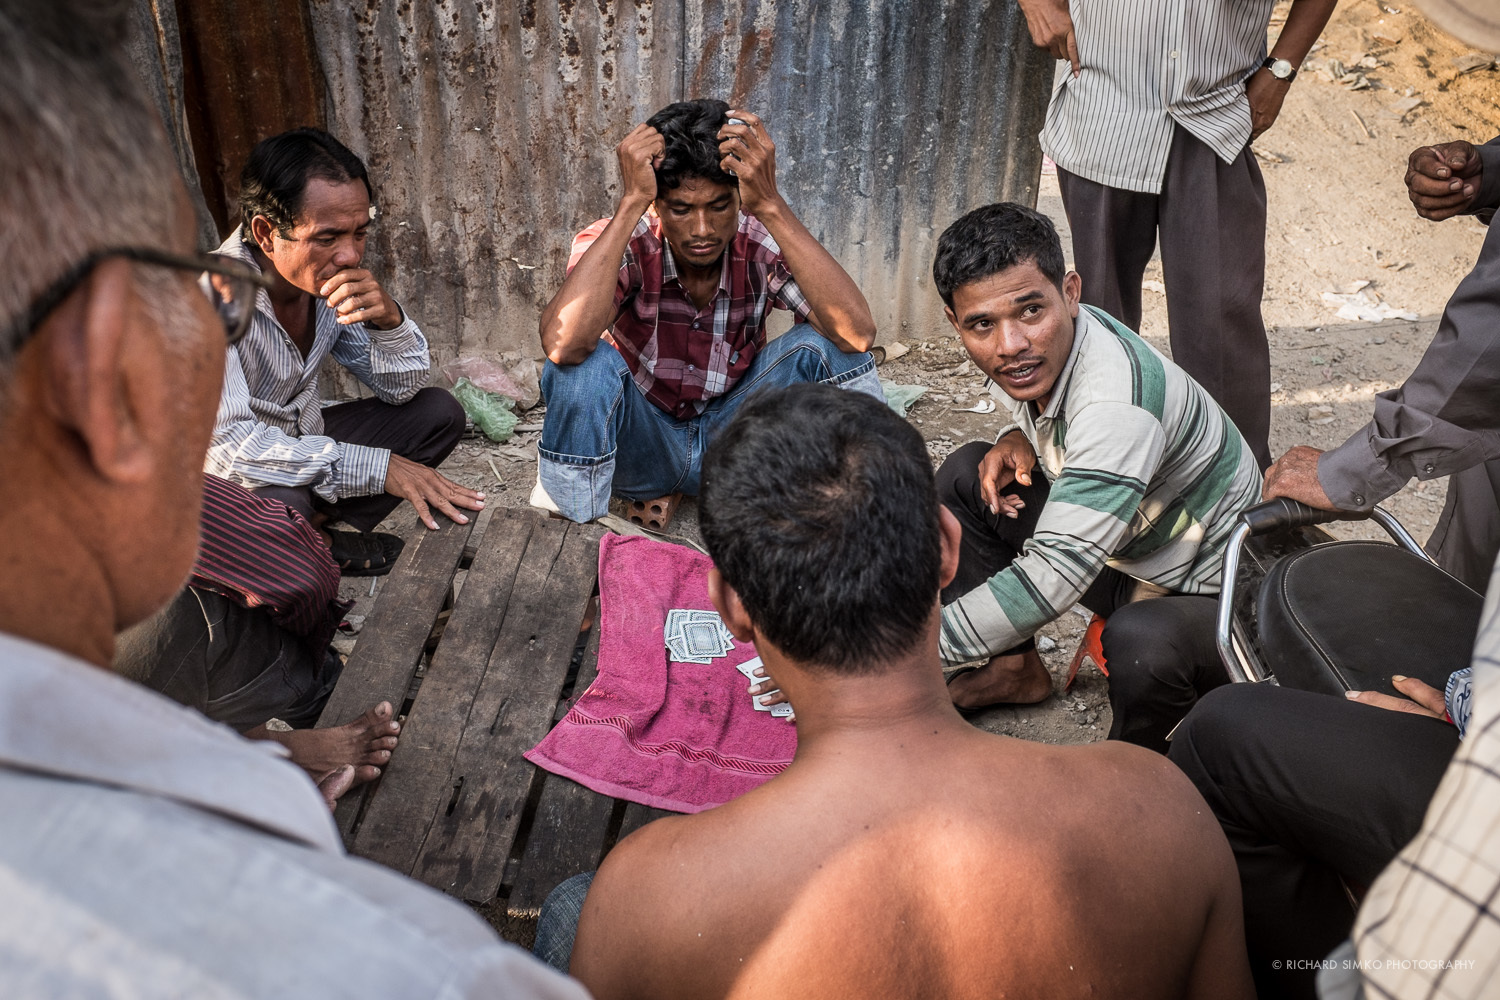 Men playing cards in late afternoon heat. Kandal market, Phnom Penh.